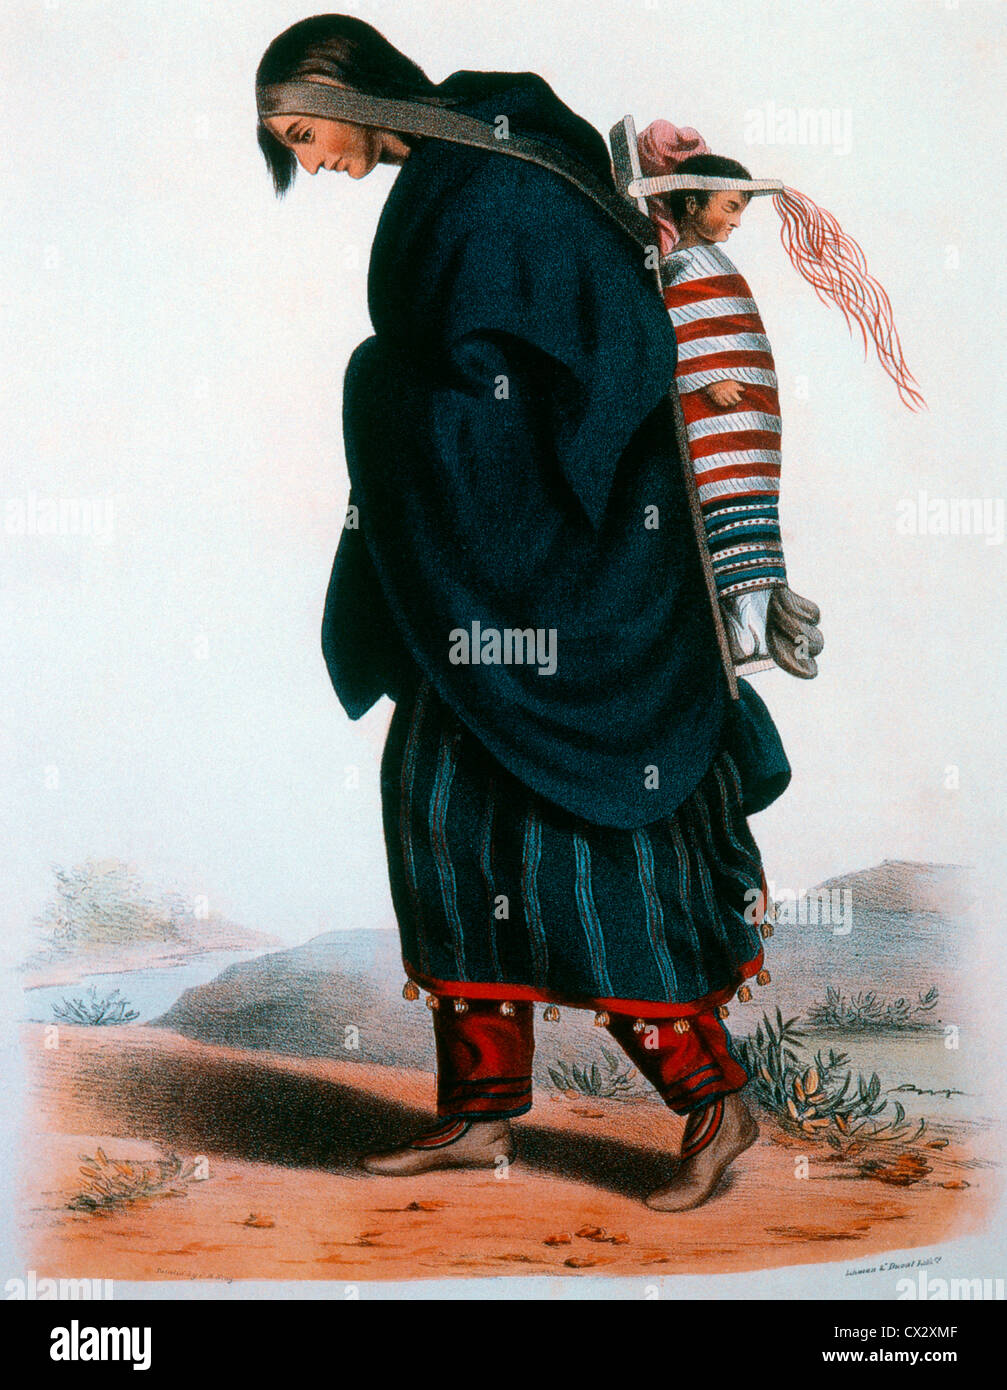 Chippewa Squaw and Child, Lithograph by McKenney and Hill after Painting by James Otto Lewis, Circa 1836 - Stock Image